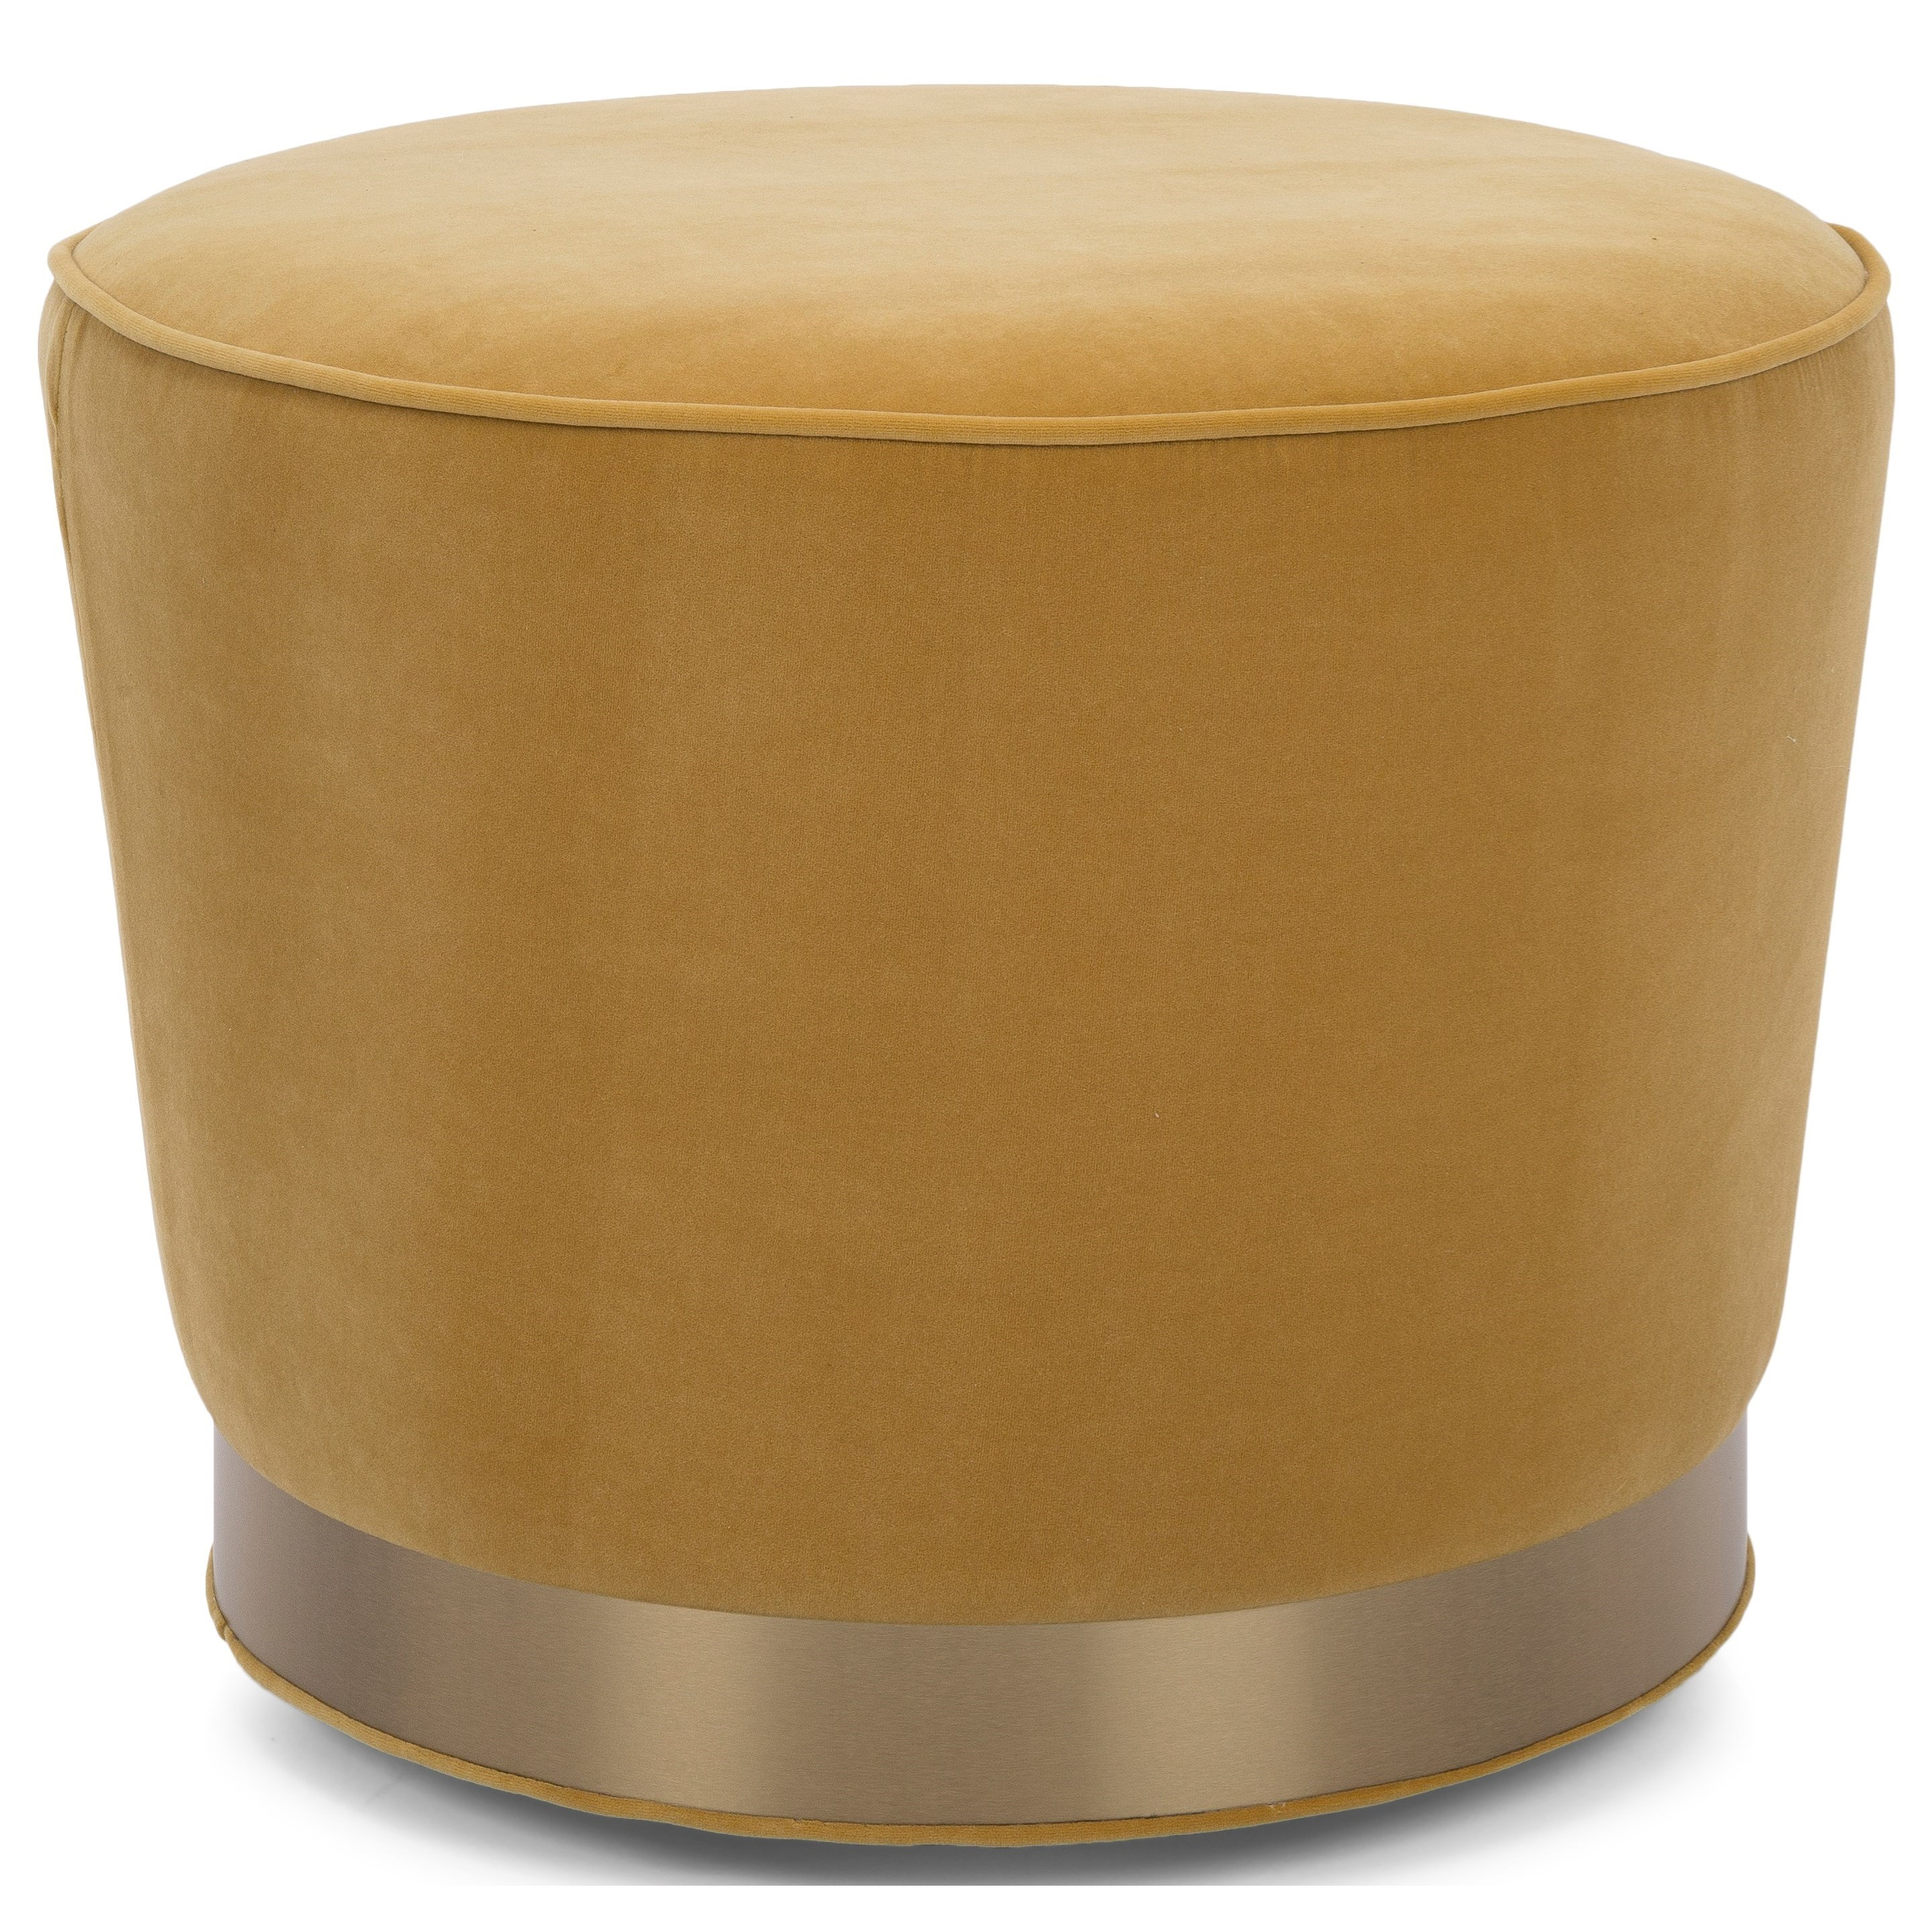 2933 Swivel Ottoman by Decor-Rest at Johnny Janosik